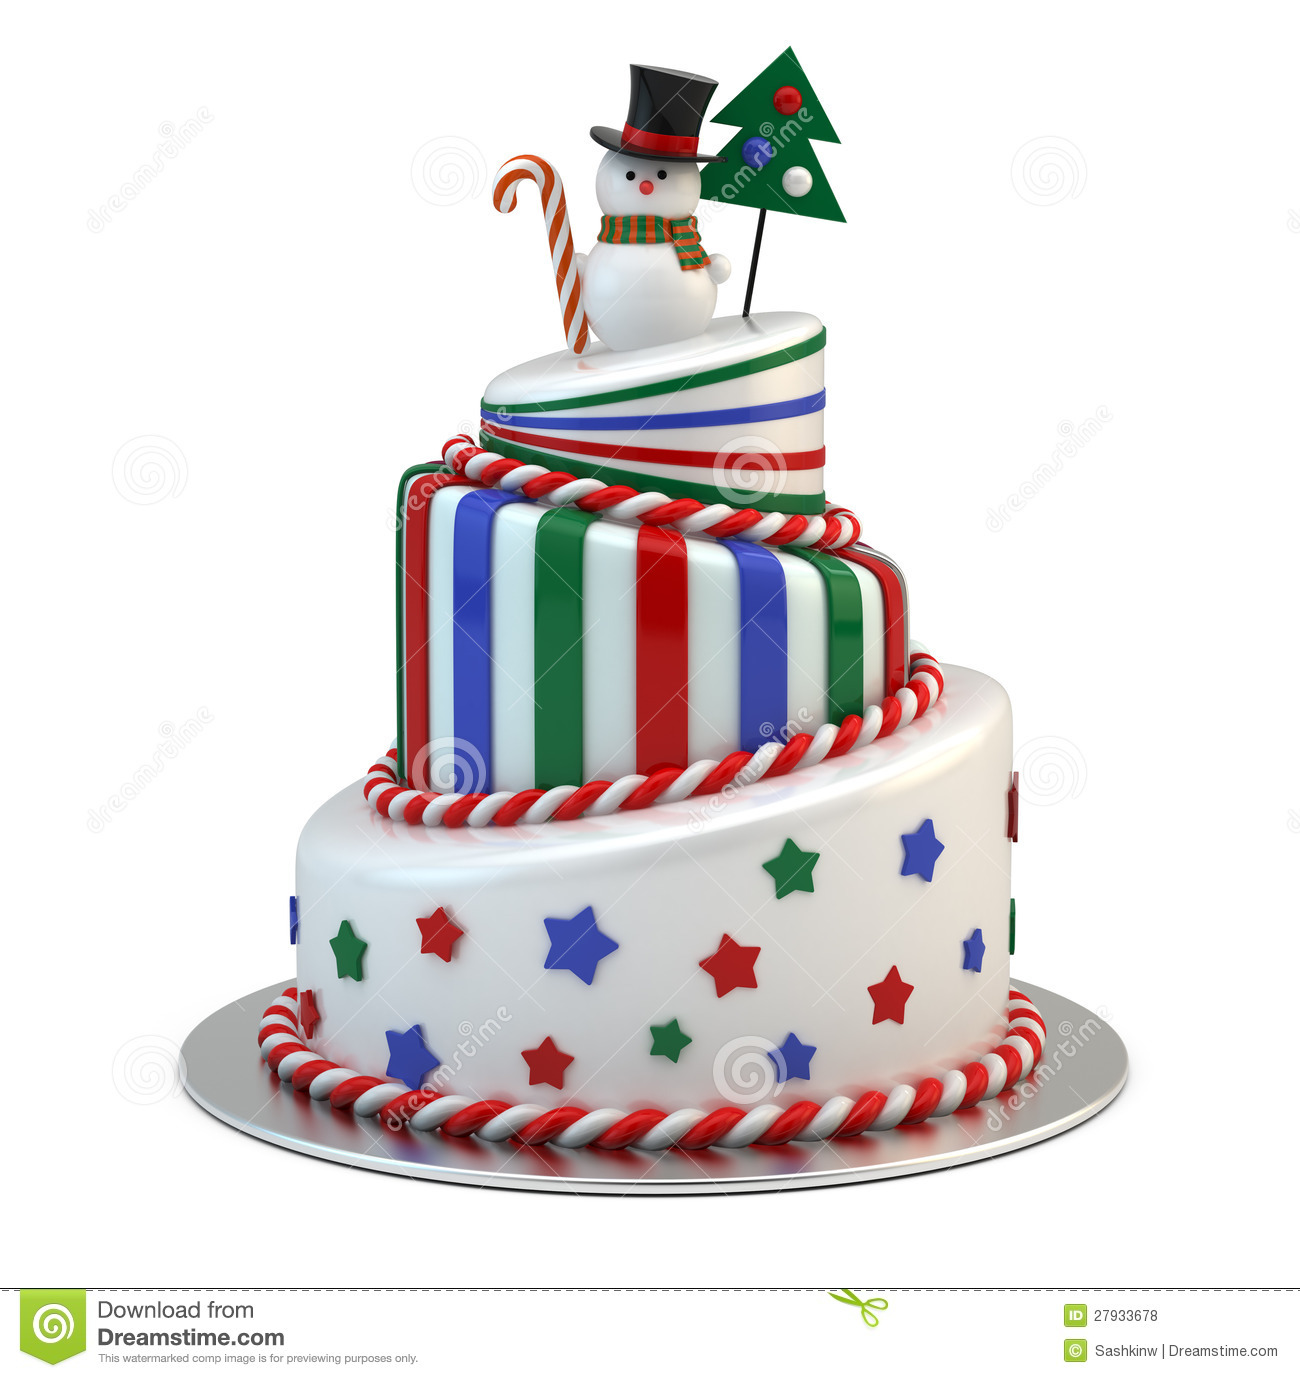 Download New Year Cake Images : new years champagne cake. new years cake. new year normal ...